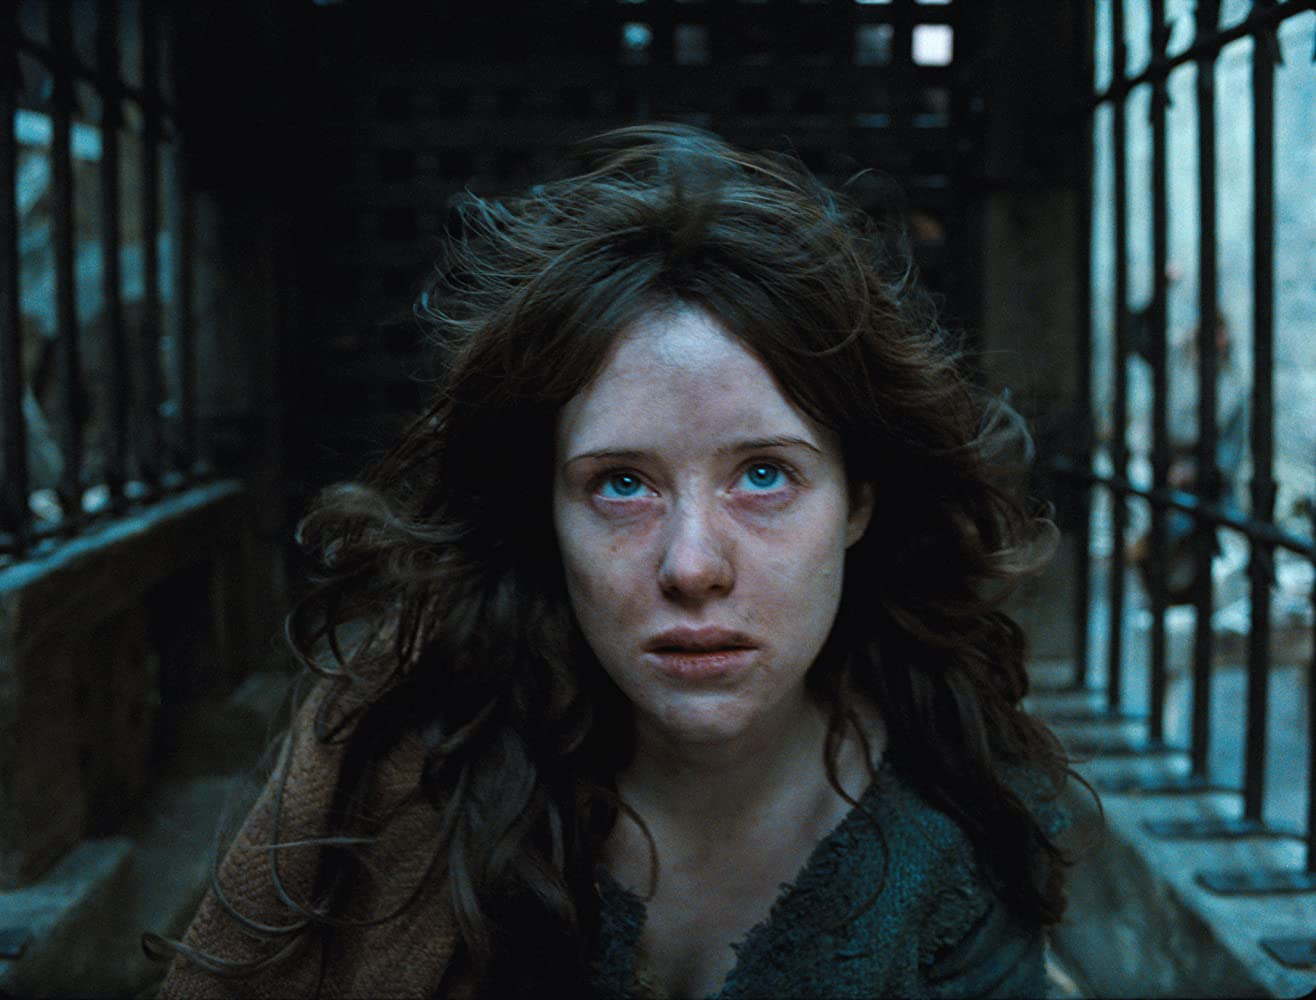 Claire Foy as The Witch in Season of the Witch (2011)